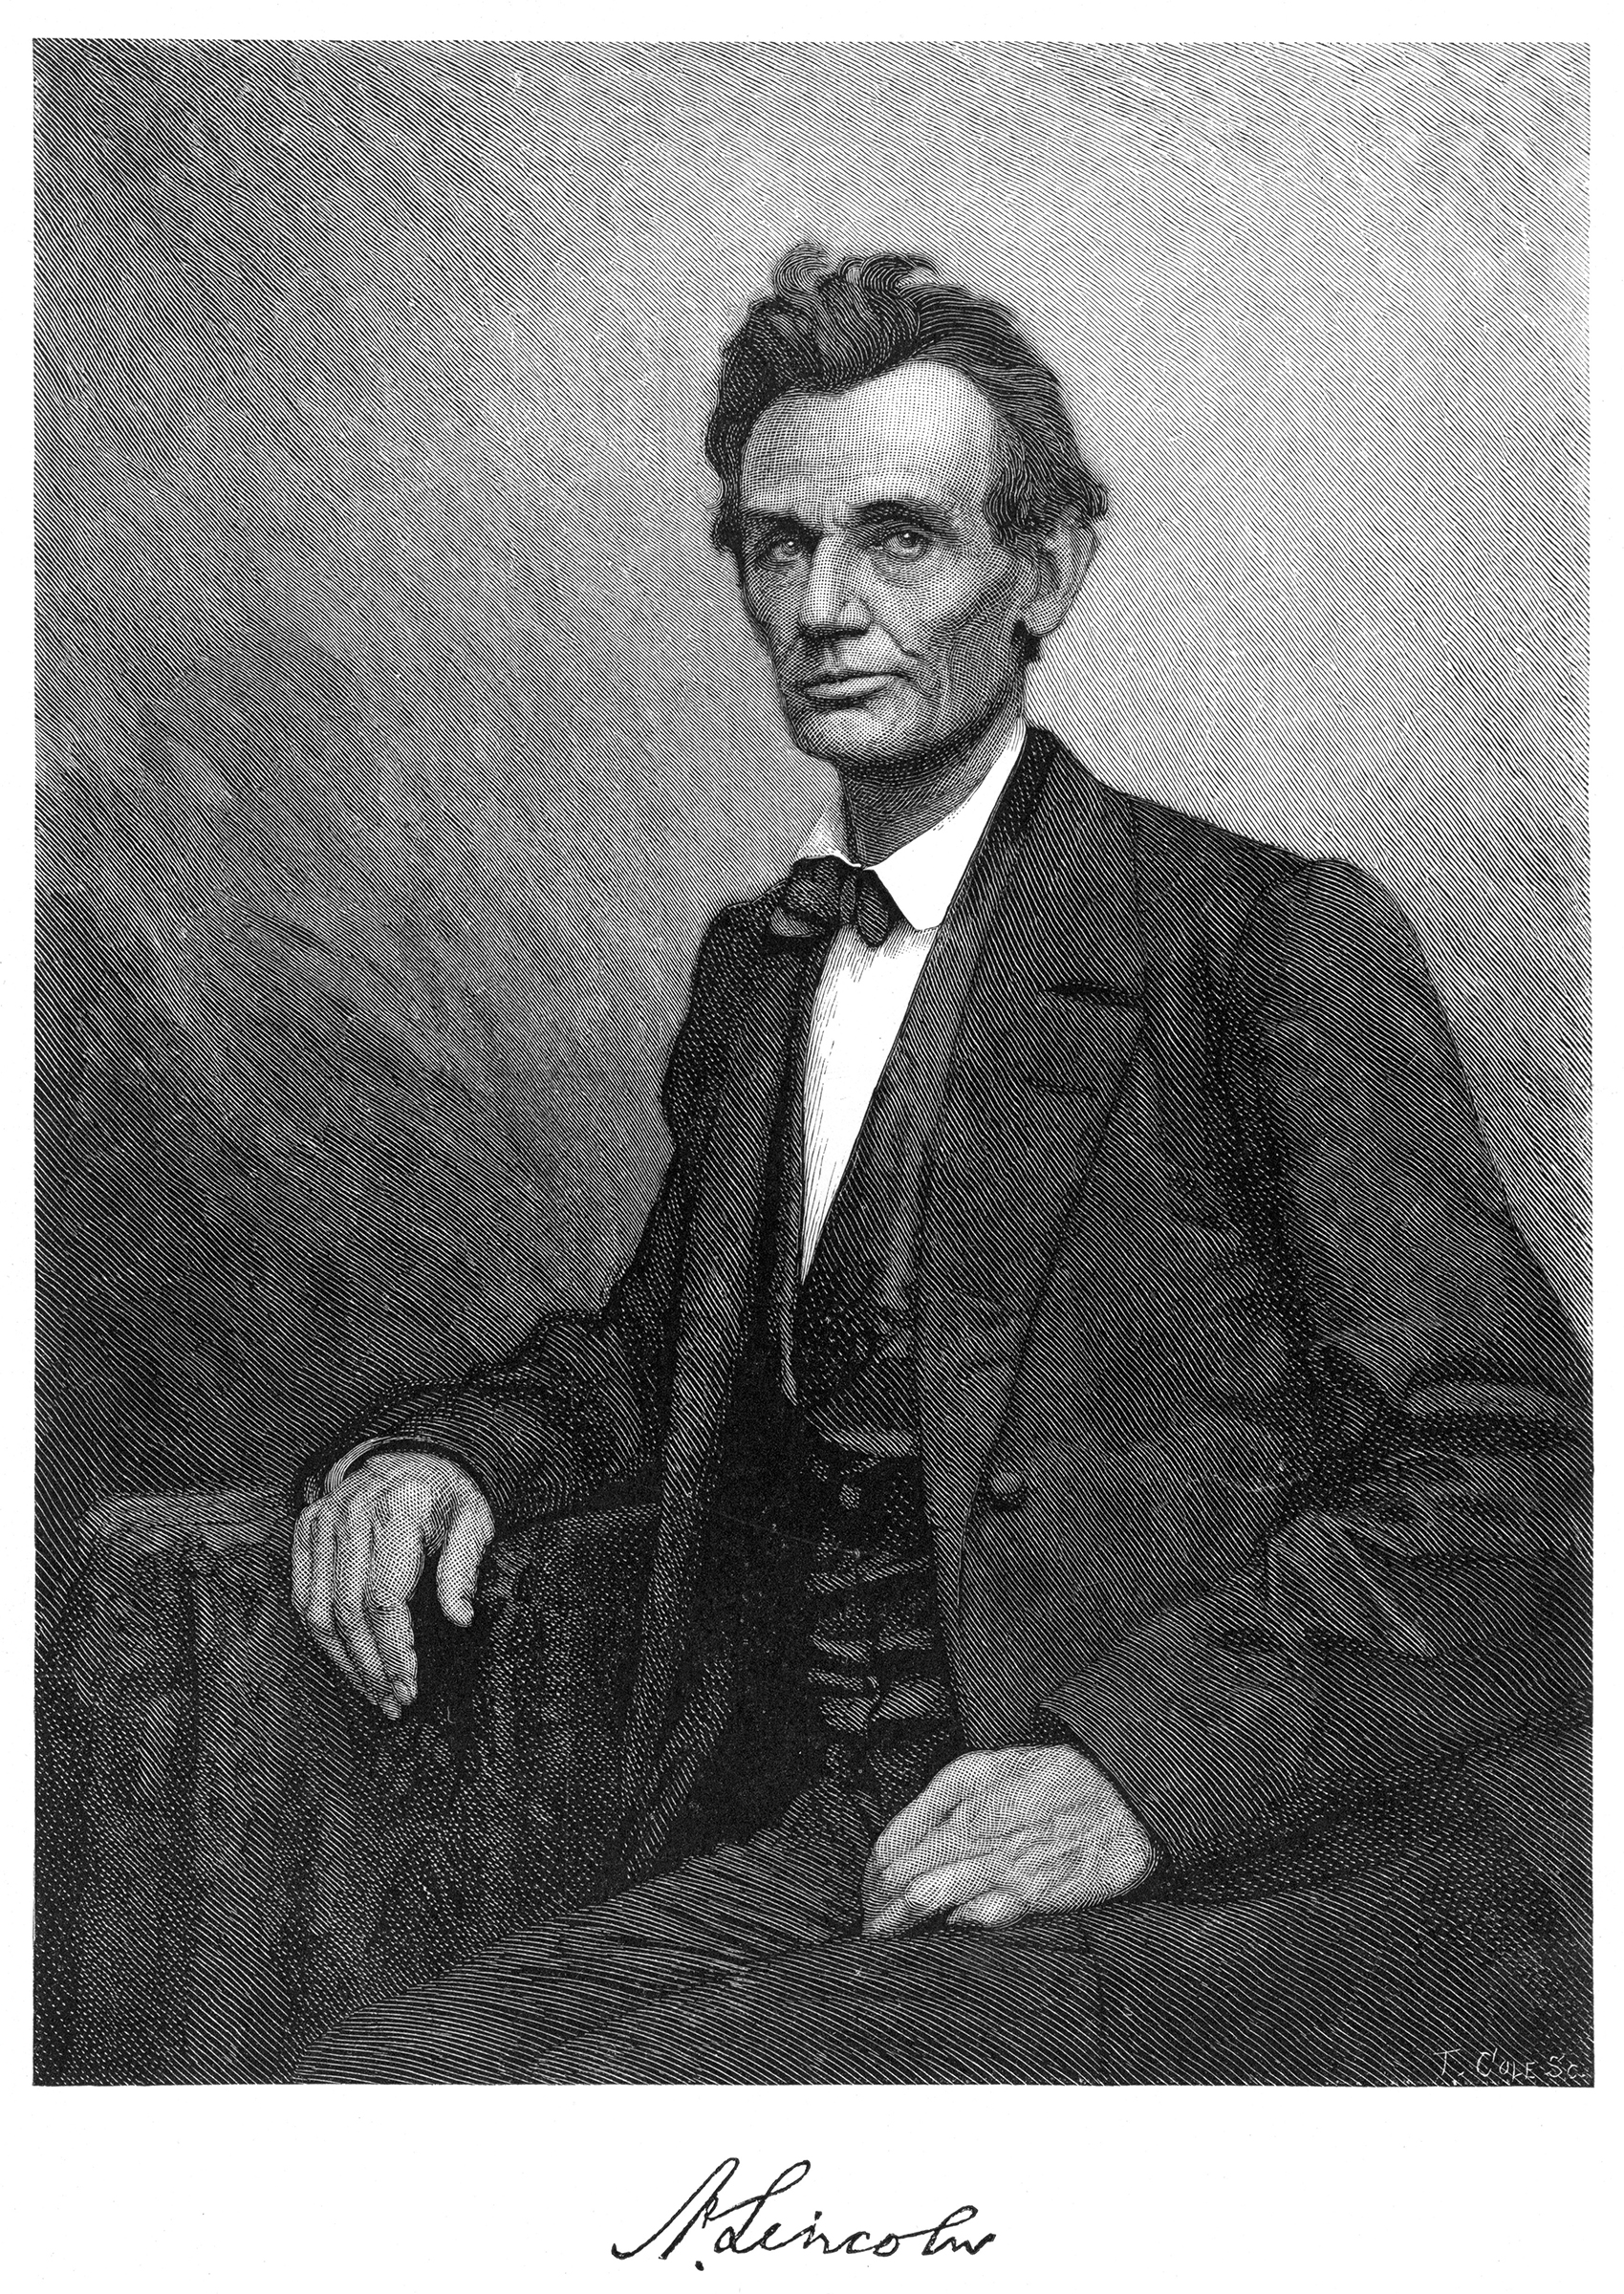 Abraham Lincoln in 1860.